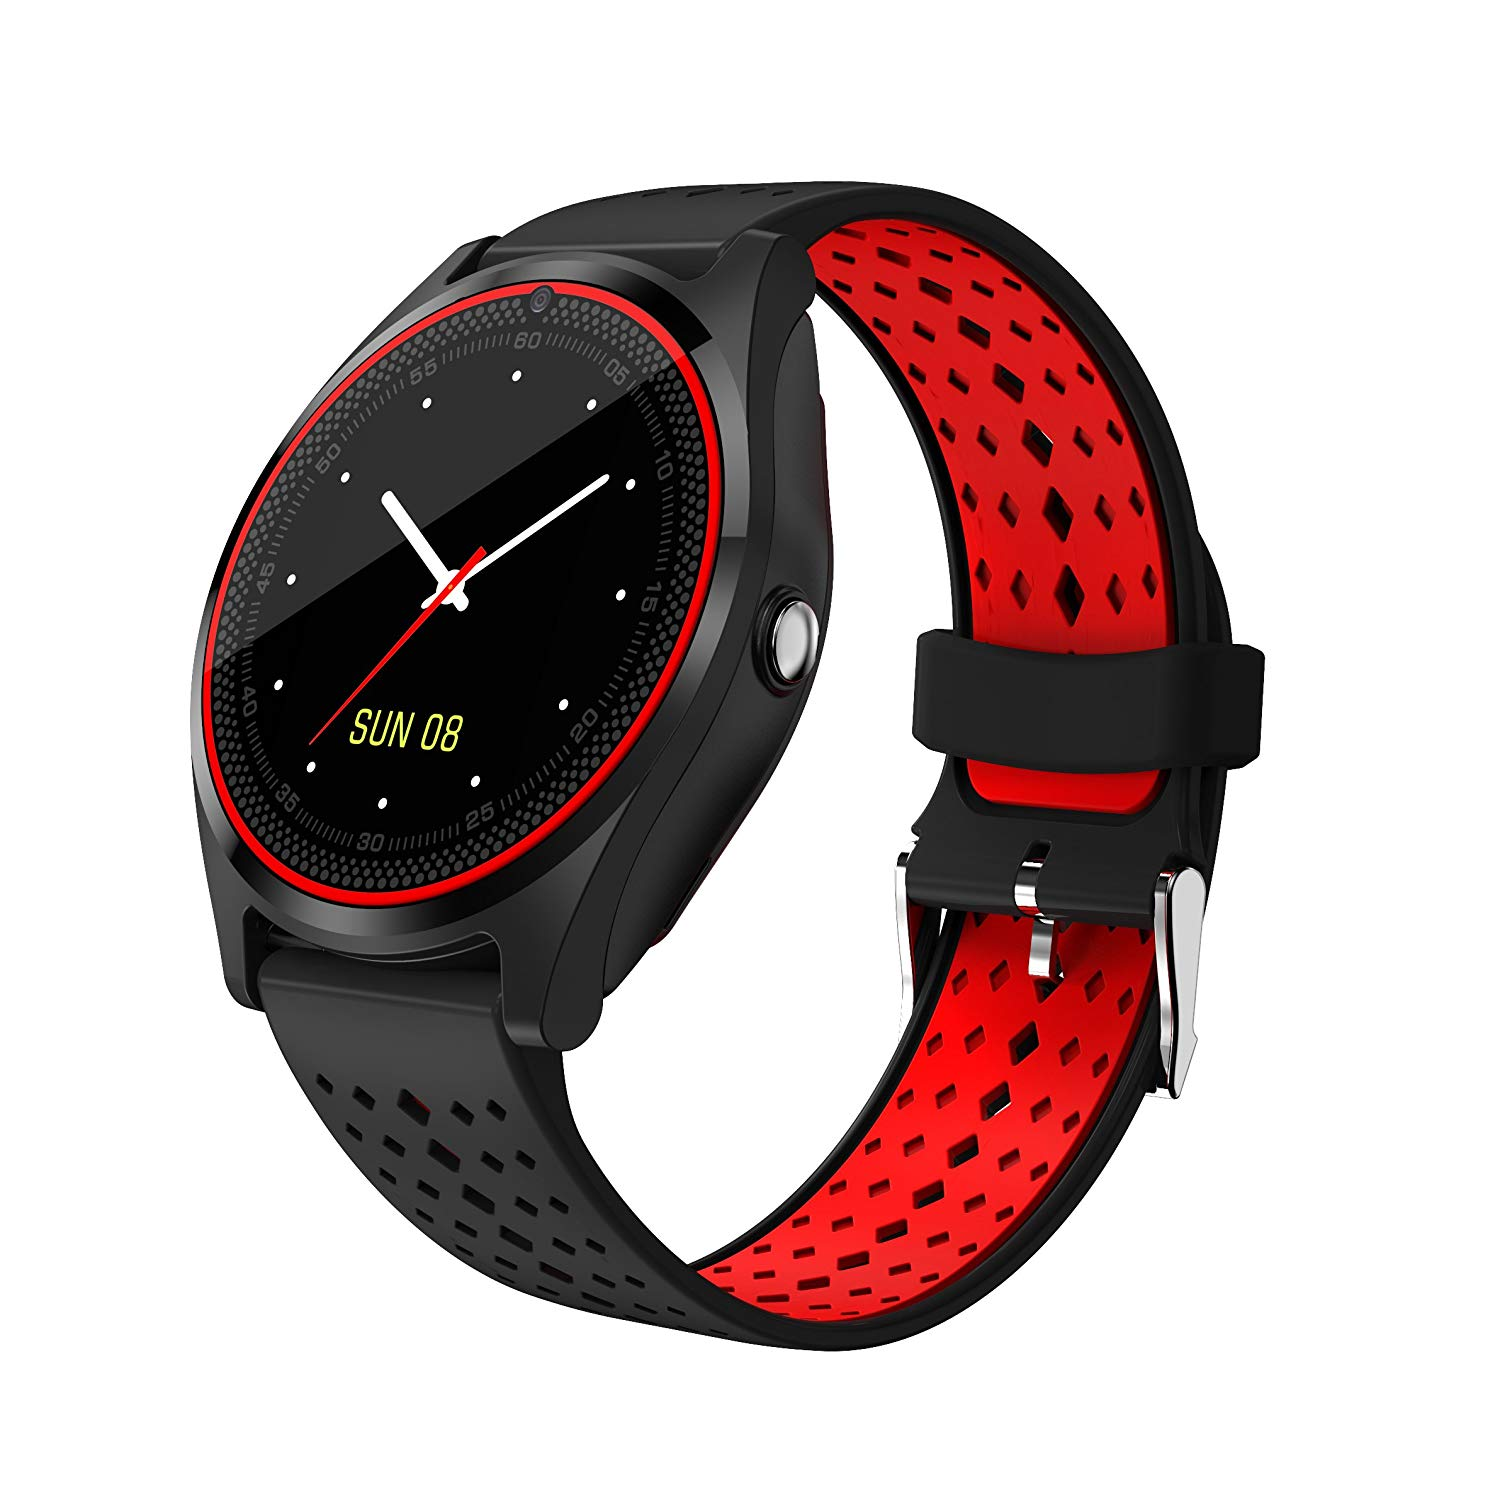 Multi-function V9 smart watch, touch screen Bluetooth watch support SIM and TF card health assistant smart watch for iPhone iOS Samsung and Android (Black+Red)